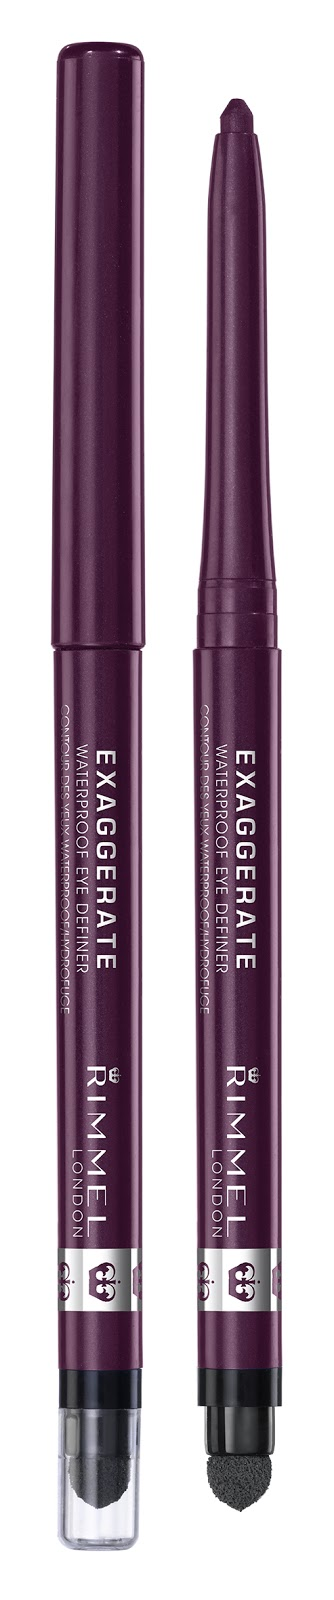 Rimmel Exaggerate